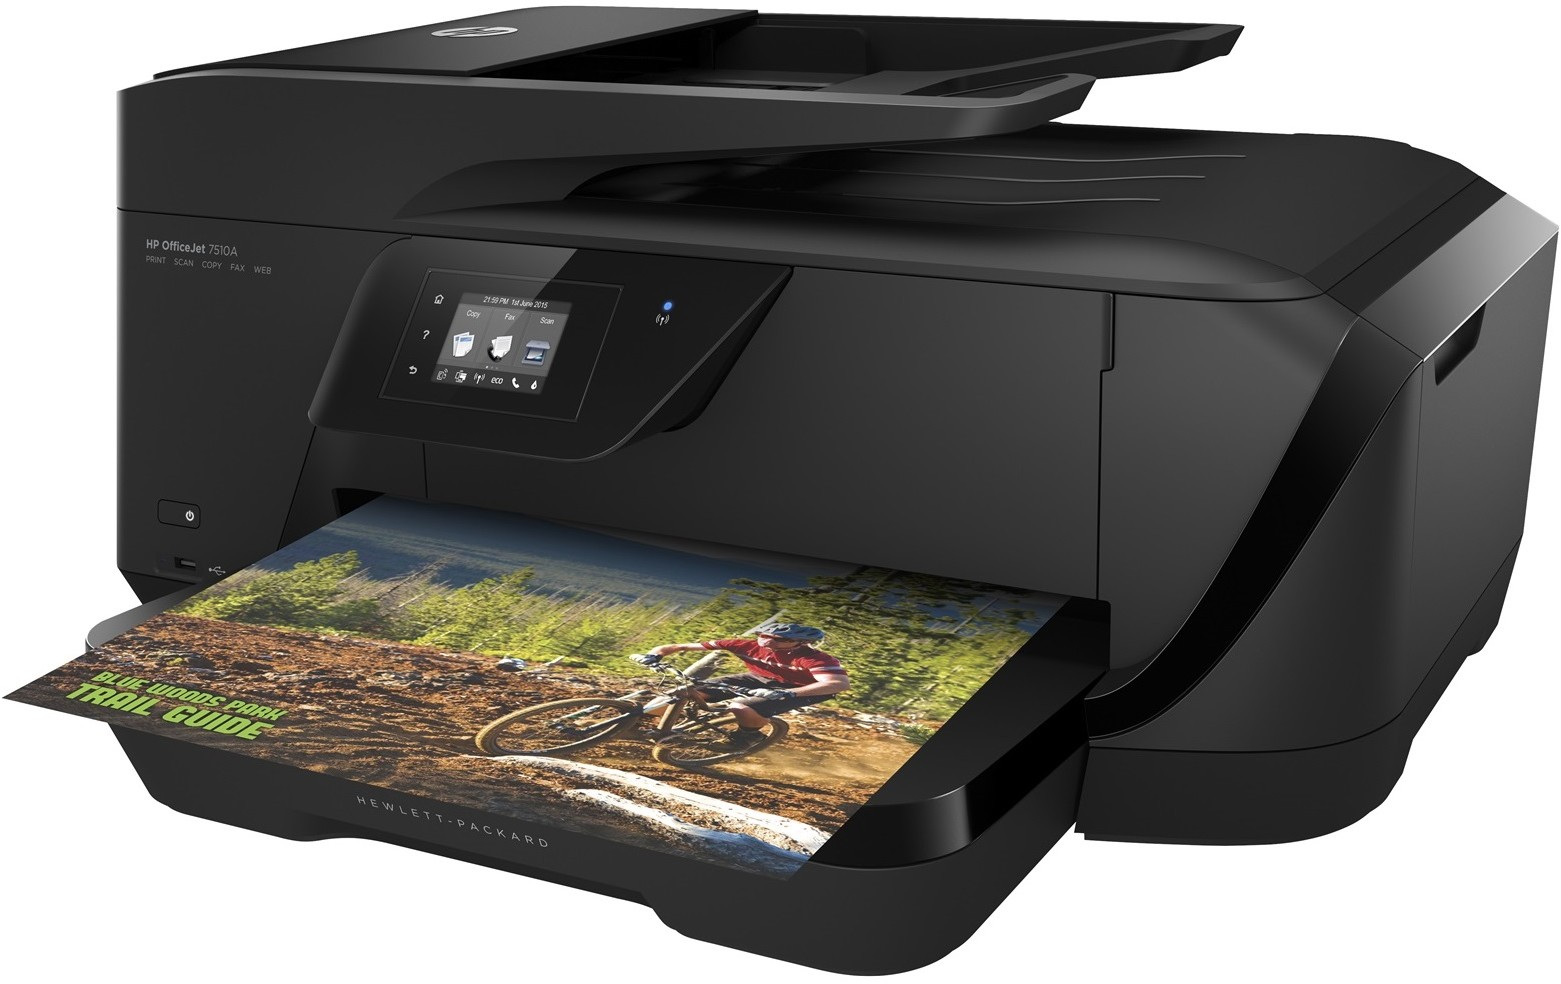 Opinie o HP OfficeJet 7510 All-in-One